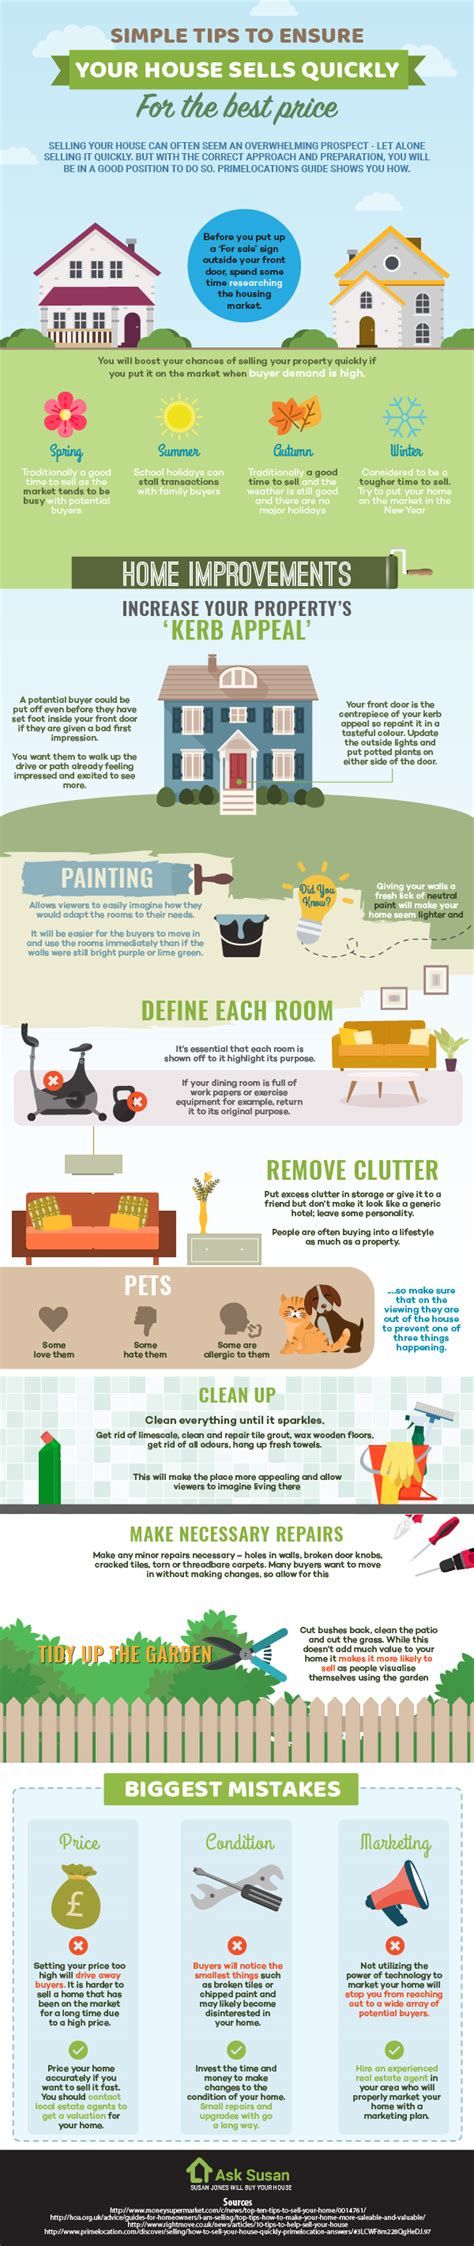 selling your house tips advice infograhic ask susan